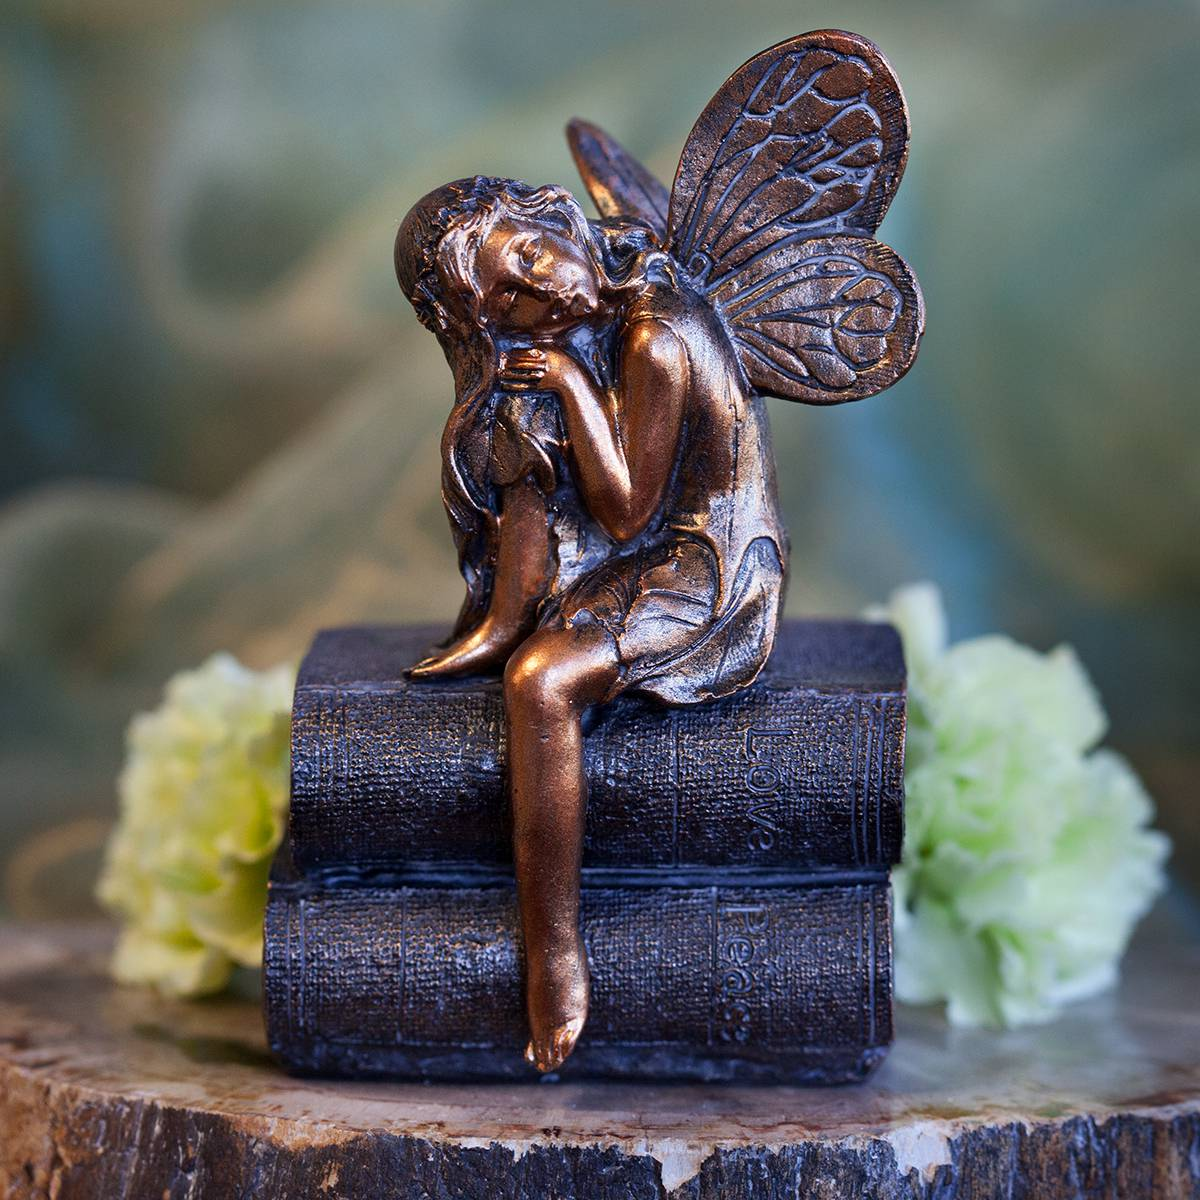 fairy napping on book figurines